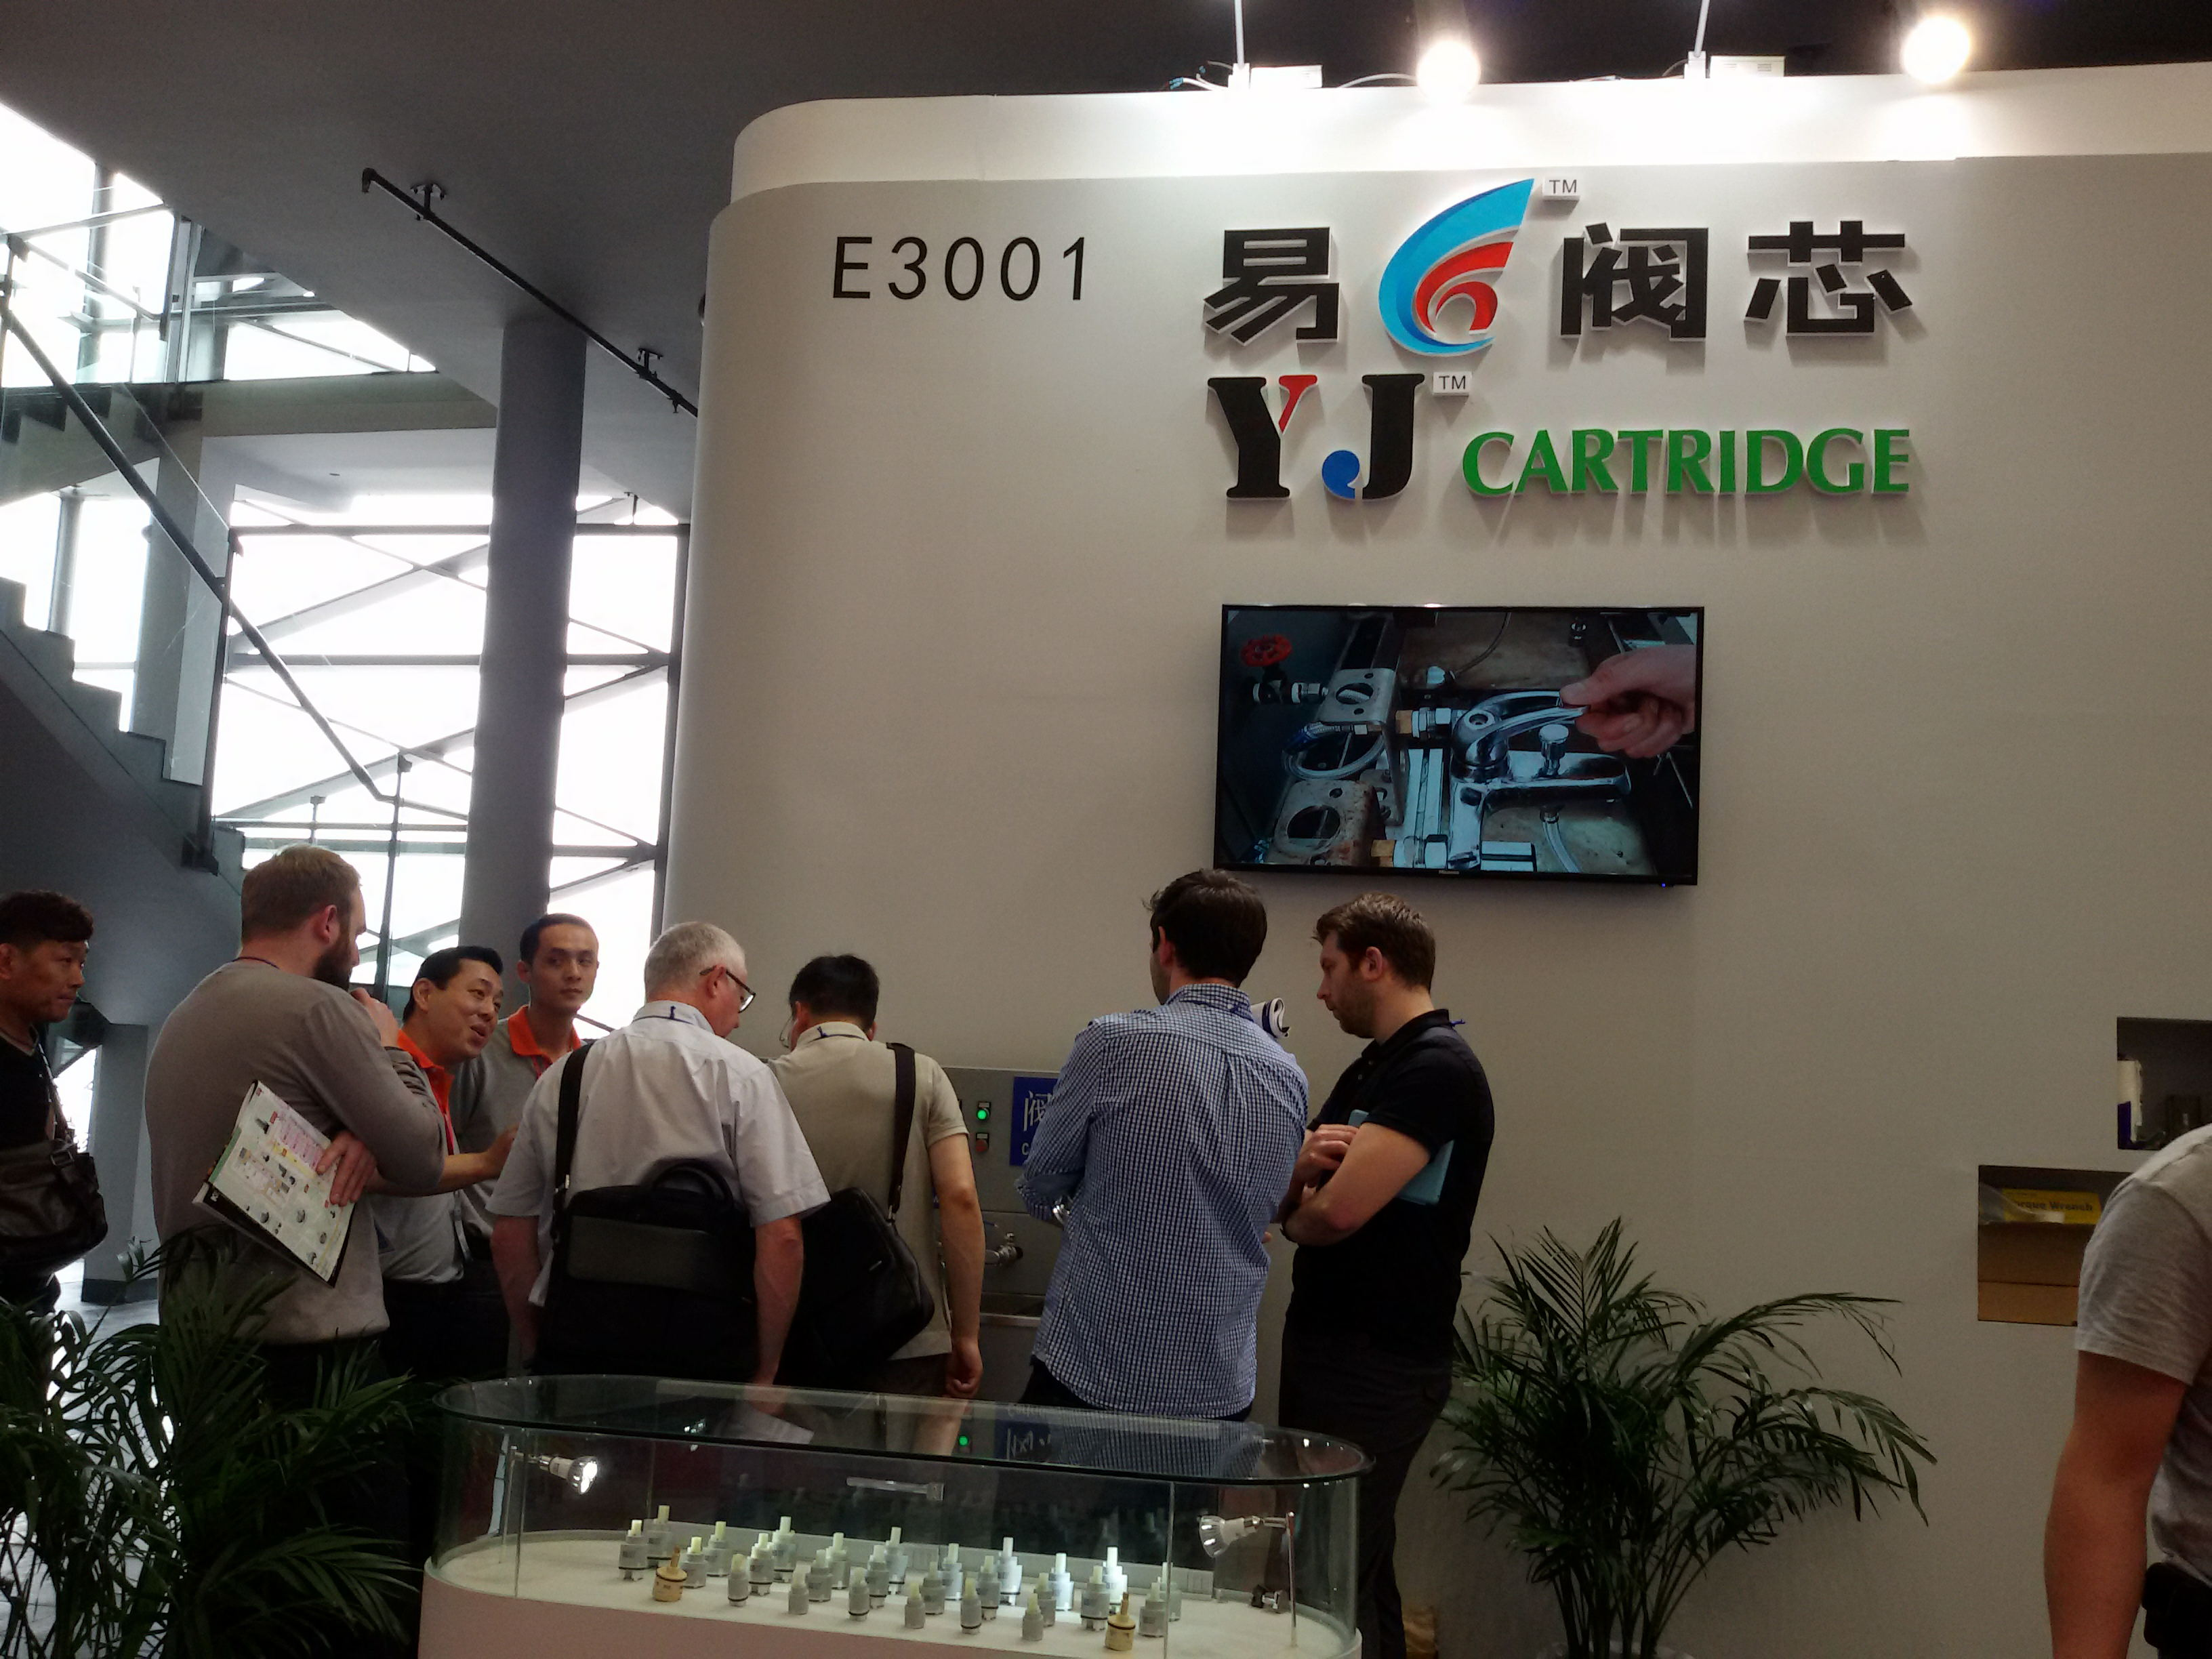 Shanghai Expo Kitchen And Bath 2015 Shanghai Yj Cartridge Co Ltd